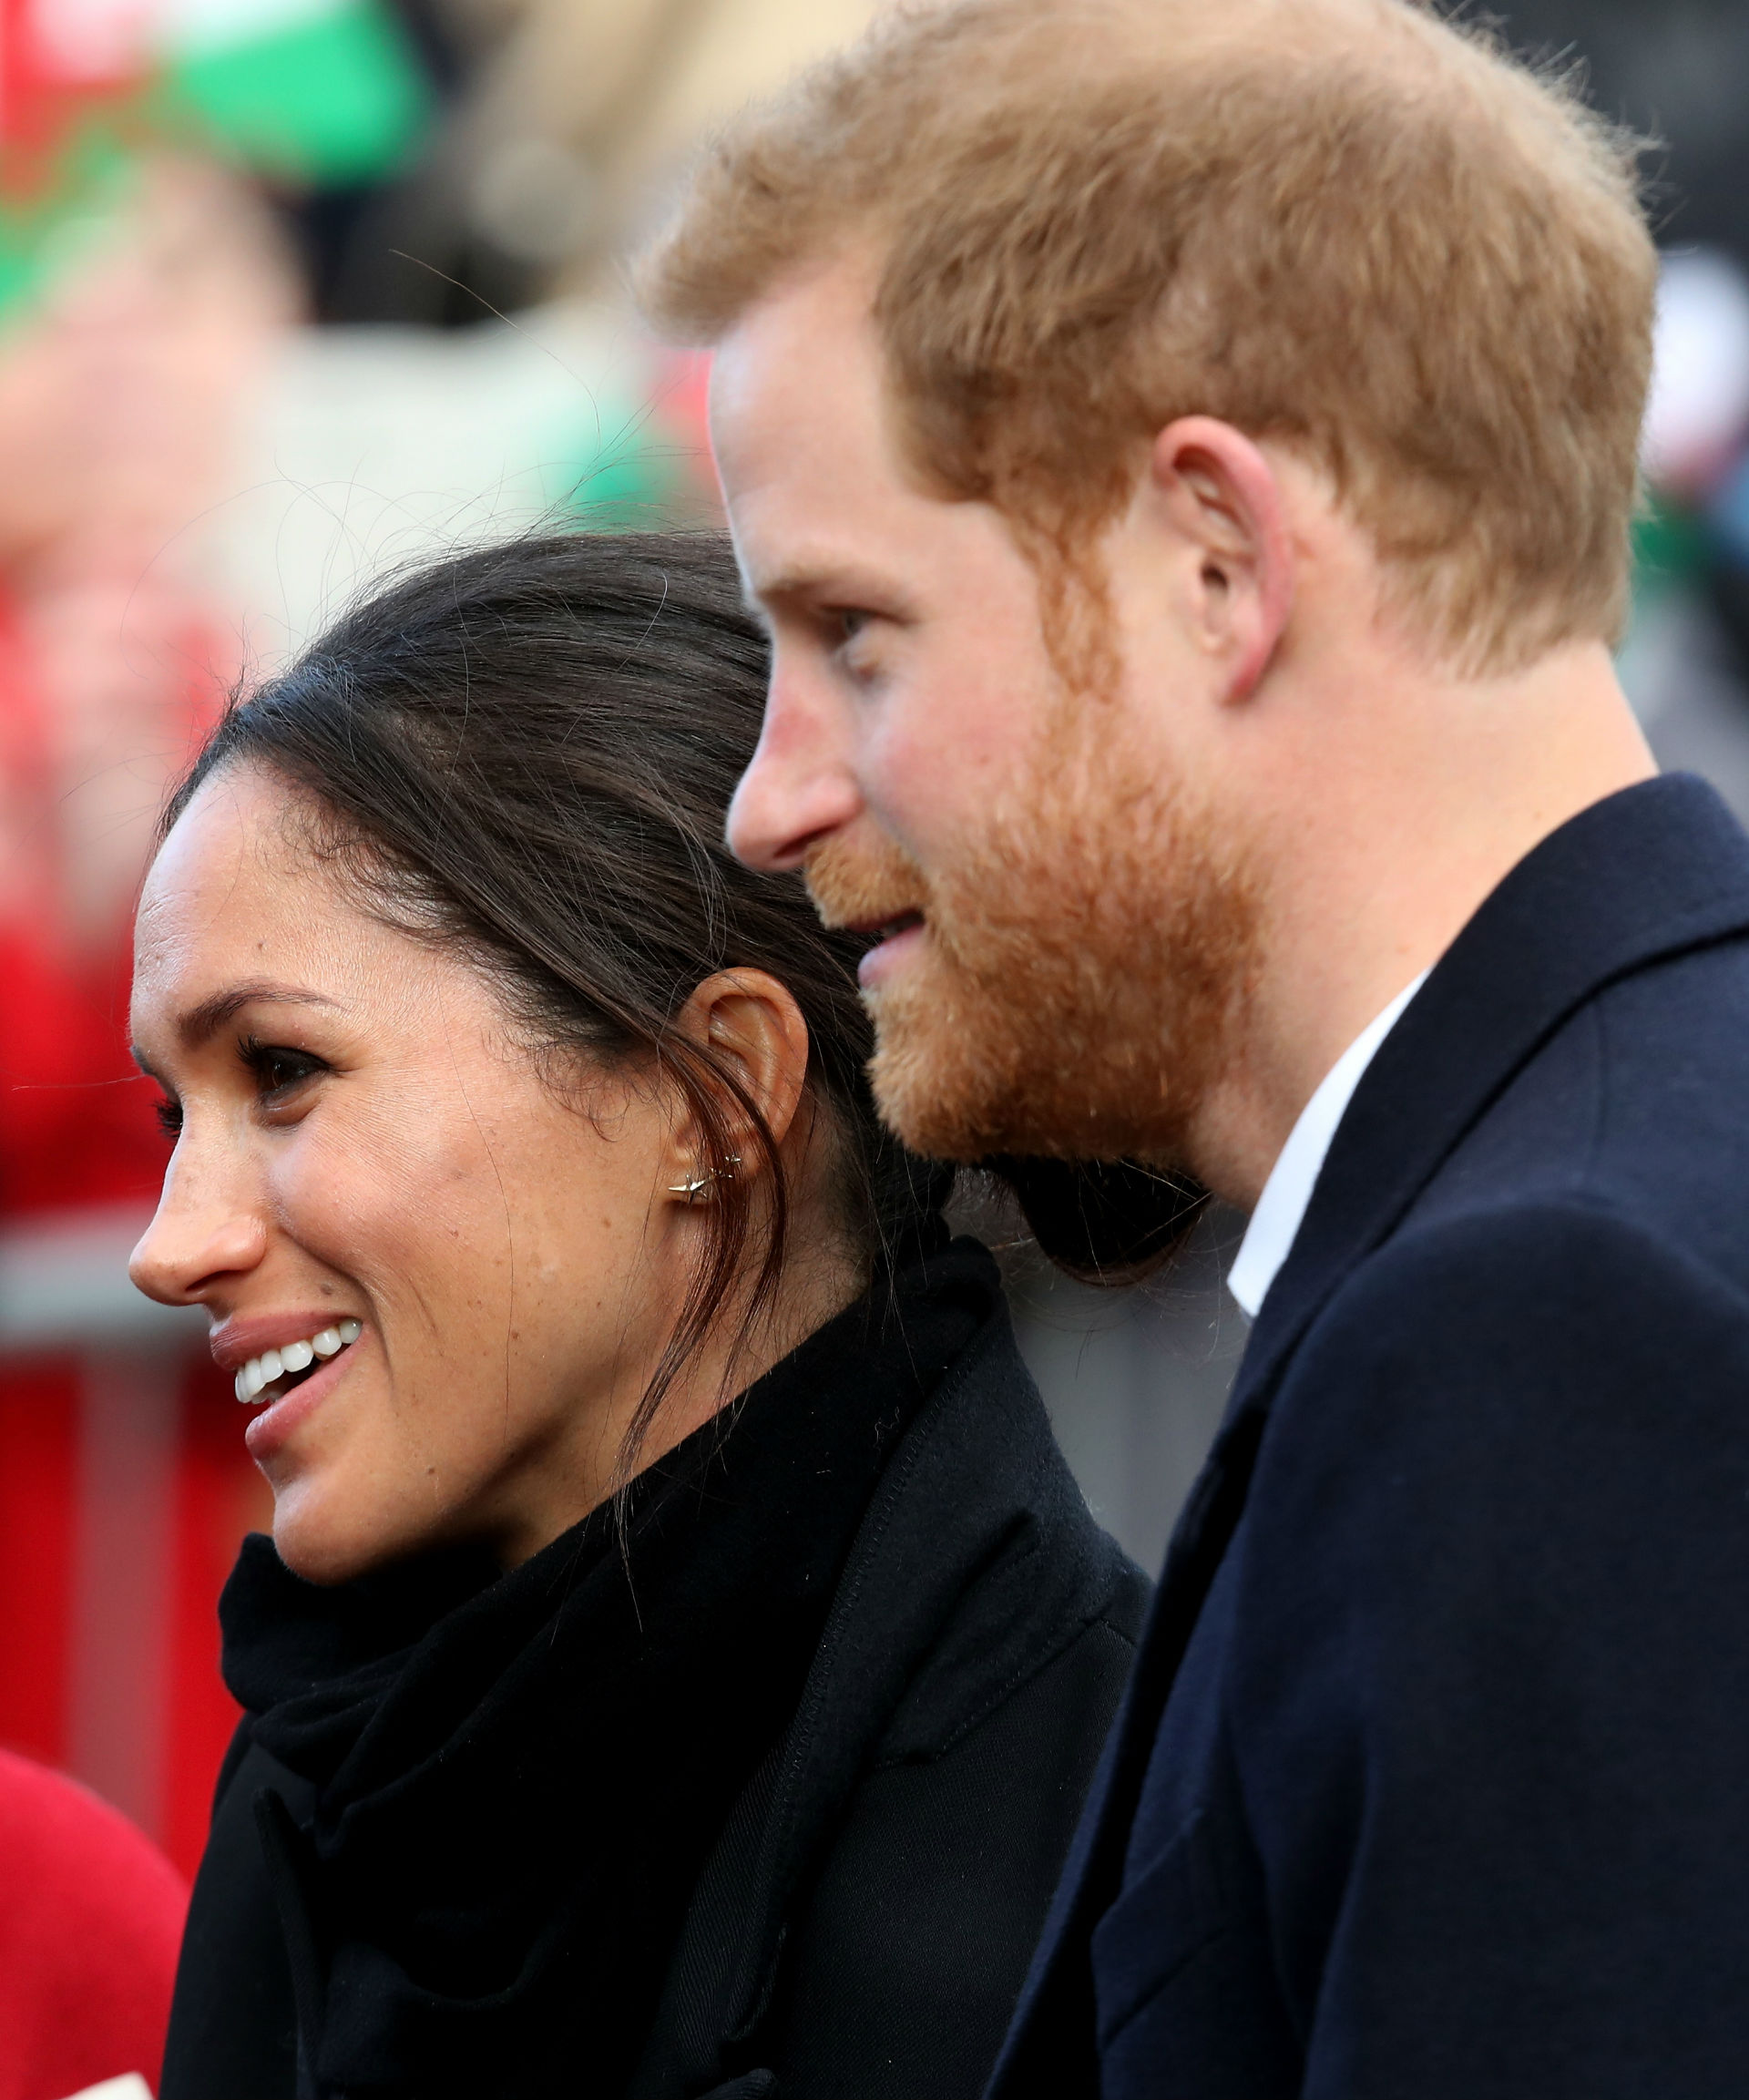 Here's How to Watch Prince Harry and Meghan Markle's Wedding